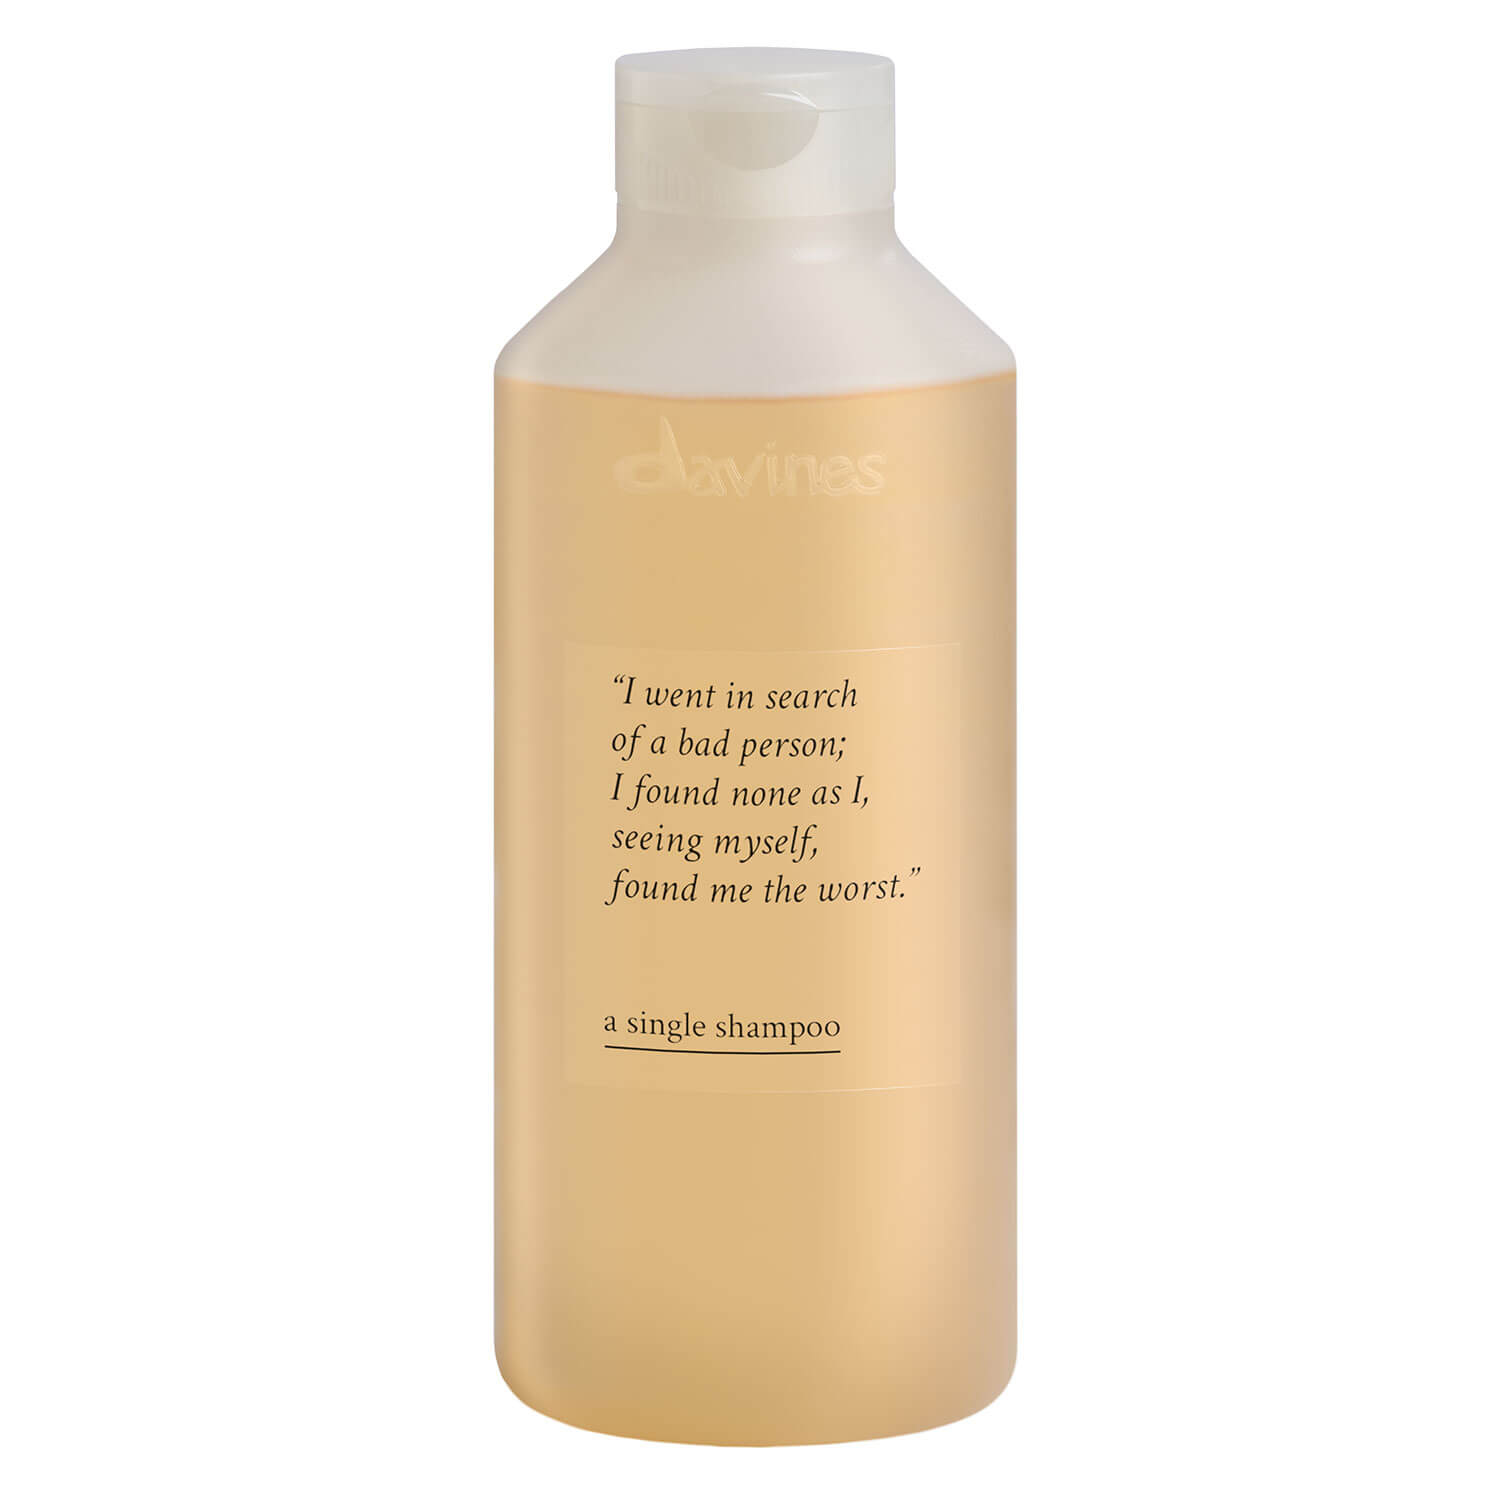 Davines Care - A Single Shampoo